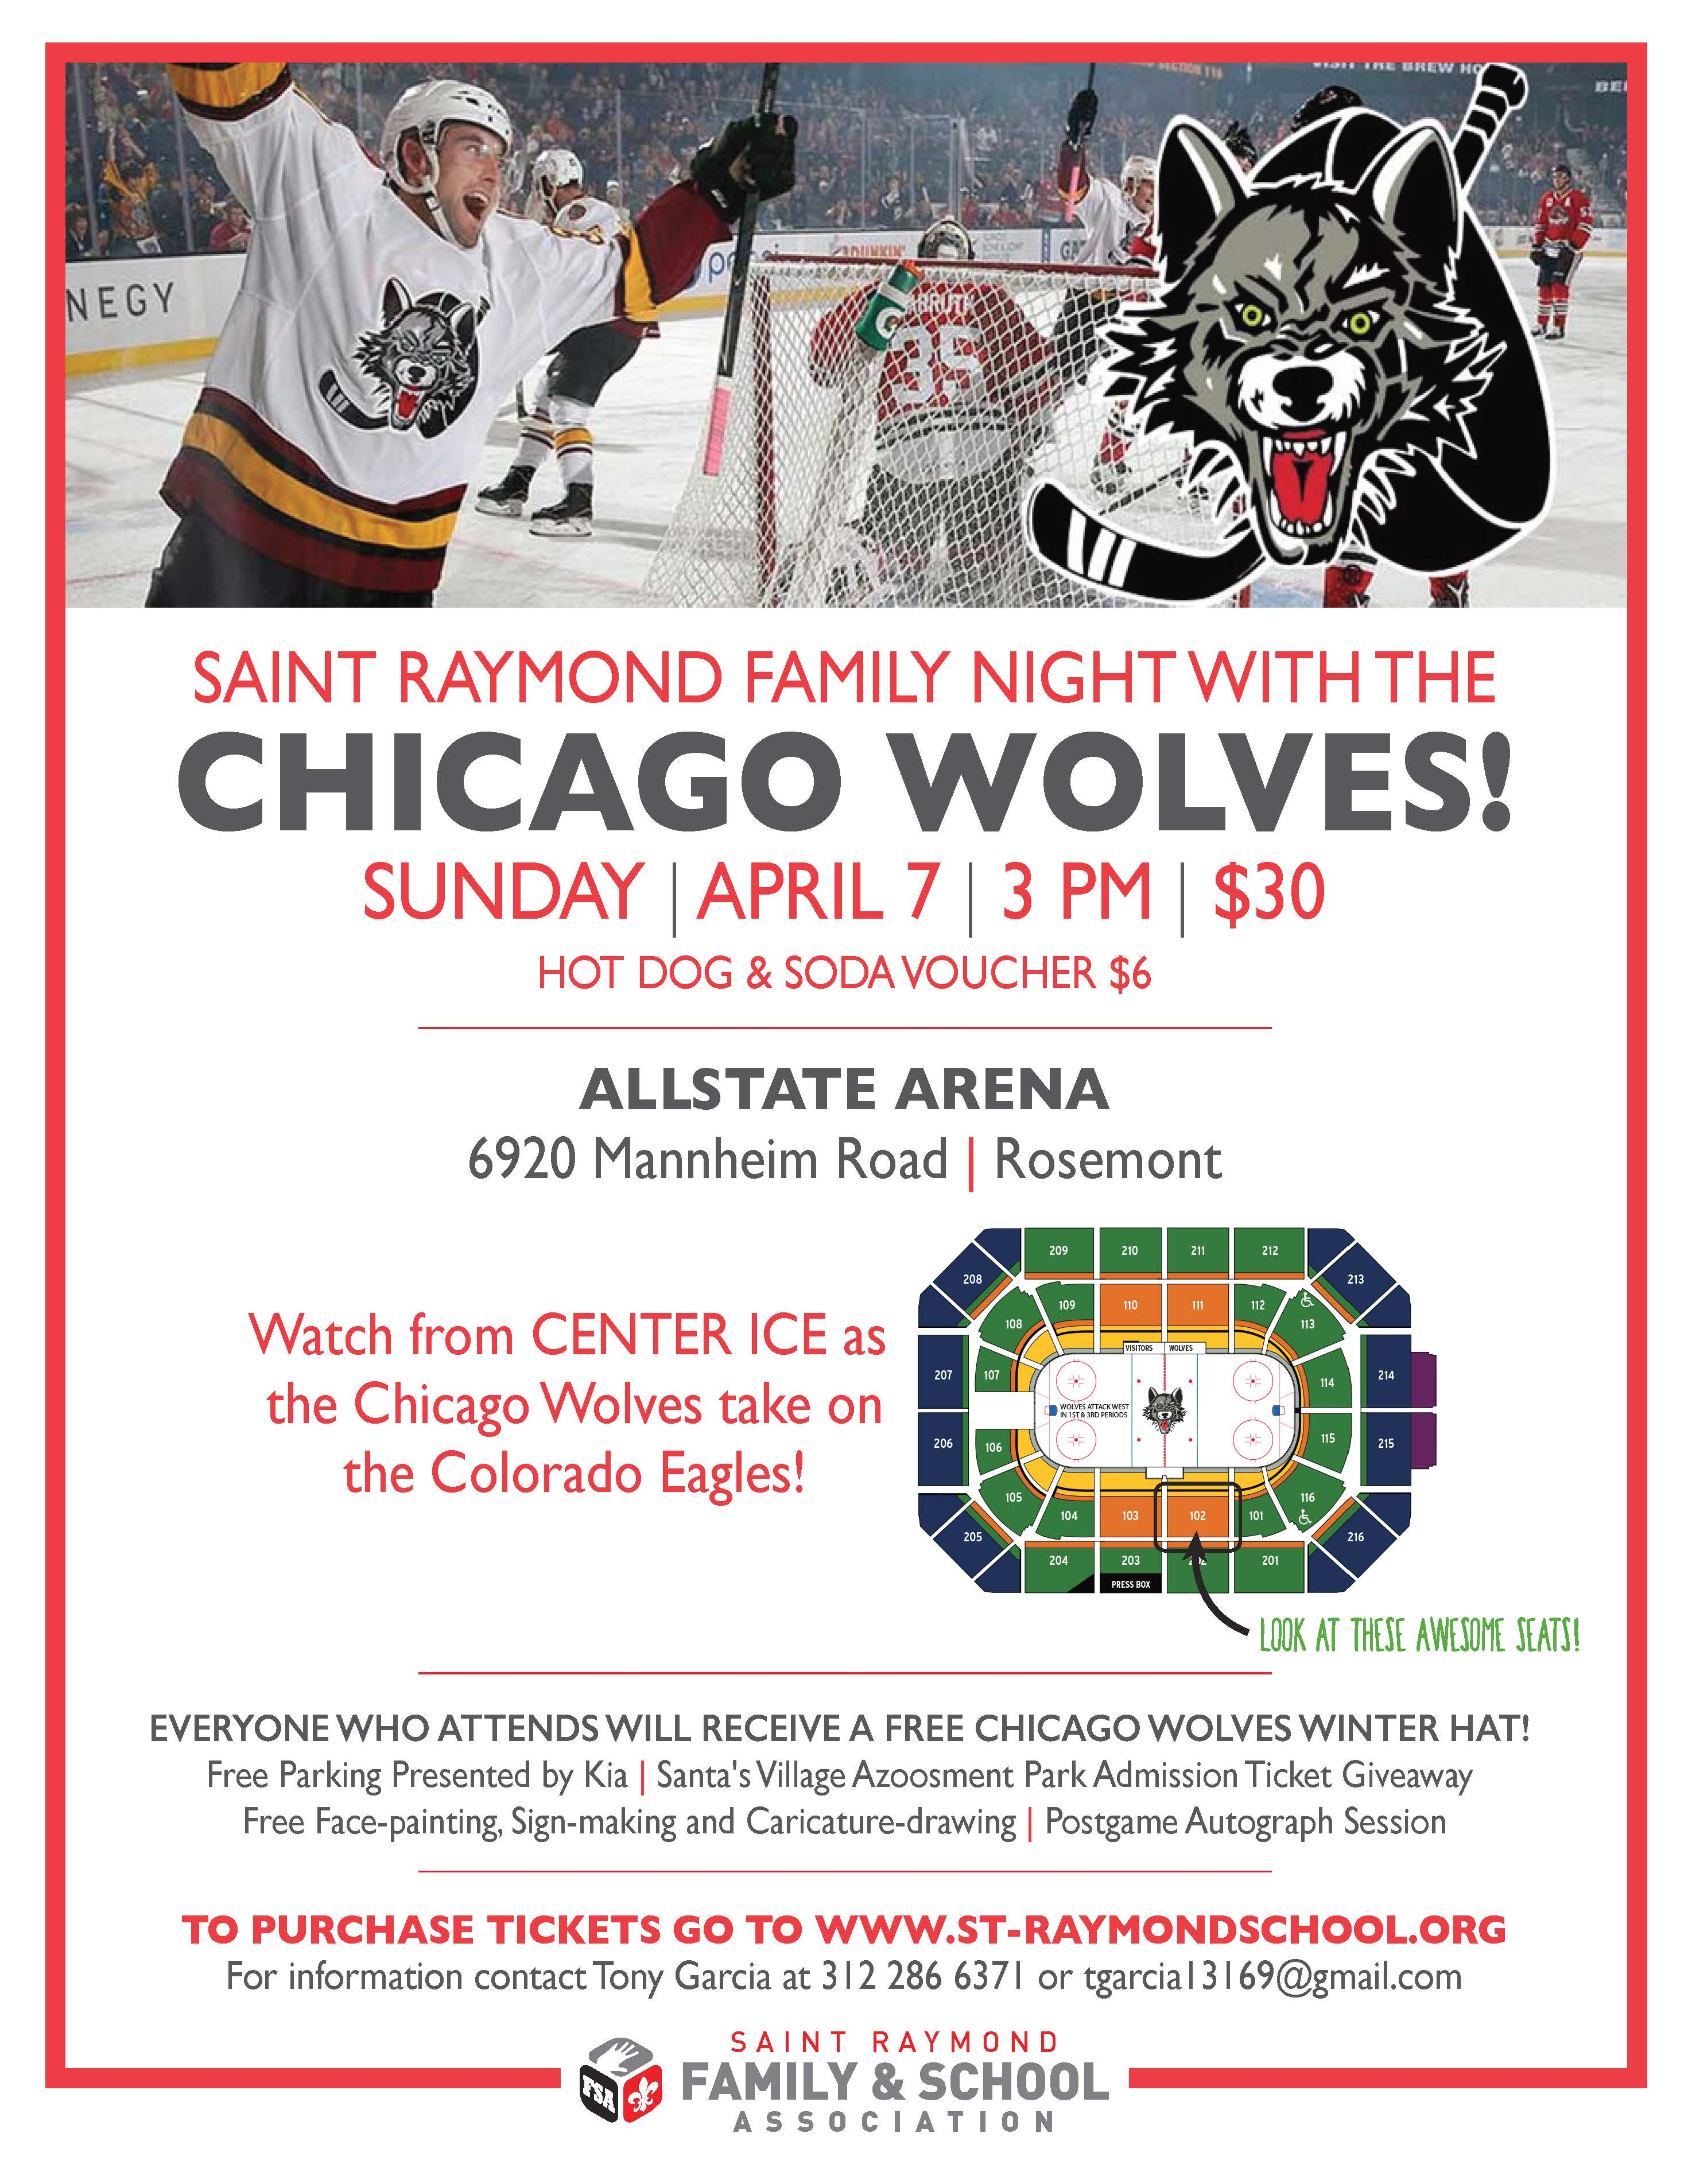 9dee330c36c8c Grab your tickets now to be part of this fun family event at the Wolves  Game! Order here: https://payit.nelnet.net/form/DmrBDYvG